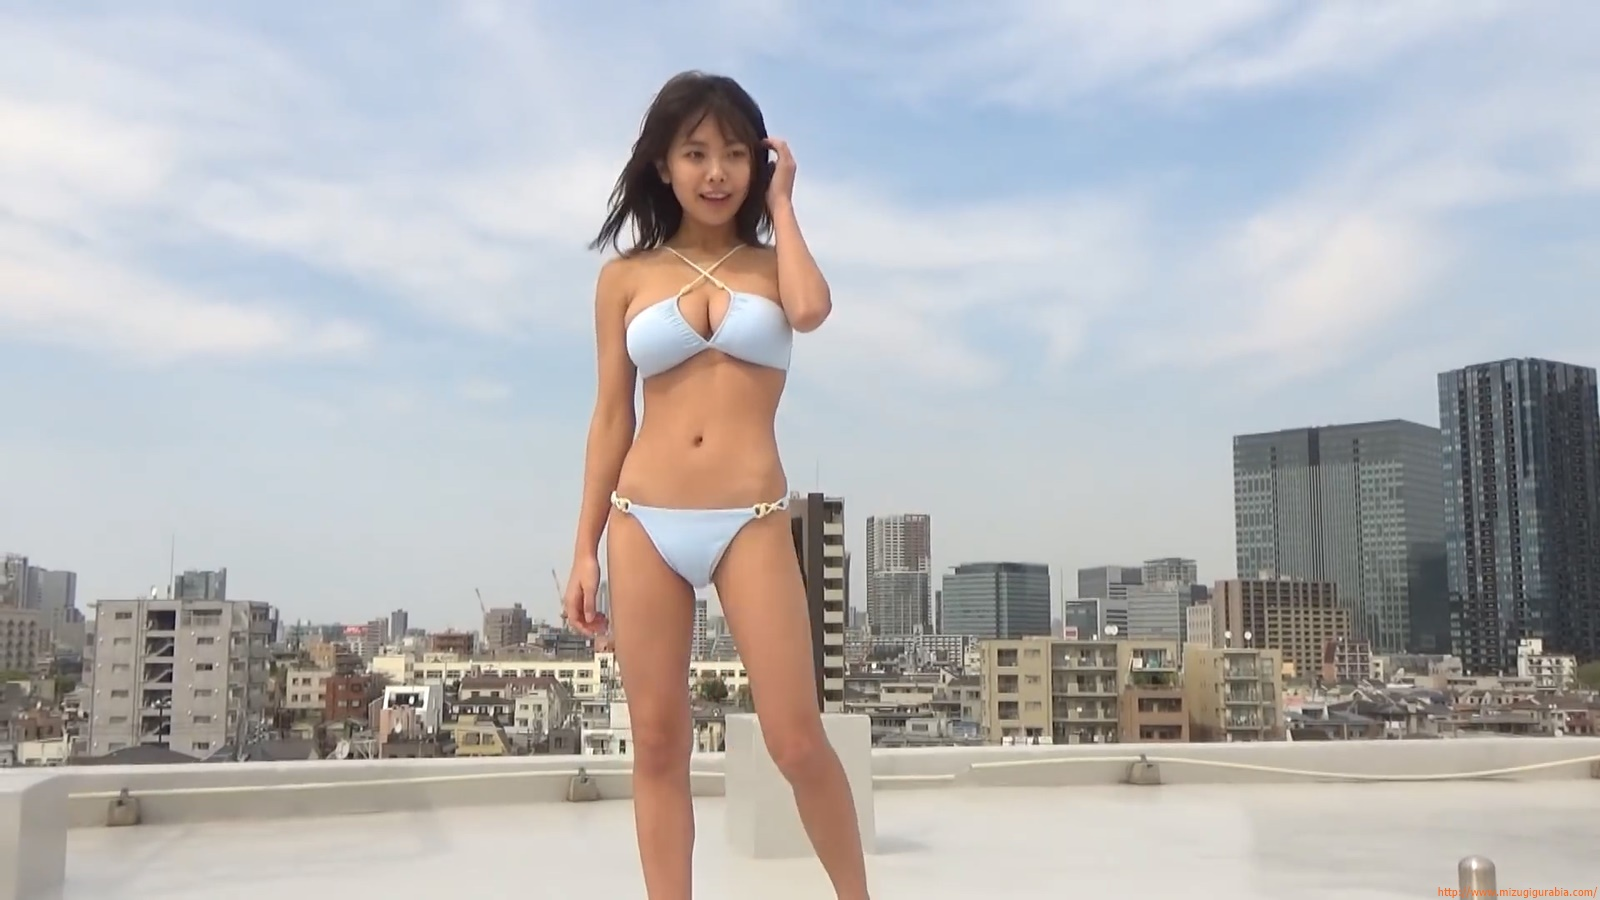 The gravure that makes all Japan cheer up Rio Teramoto 118